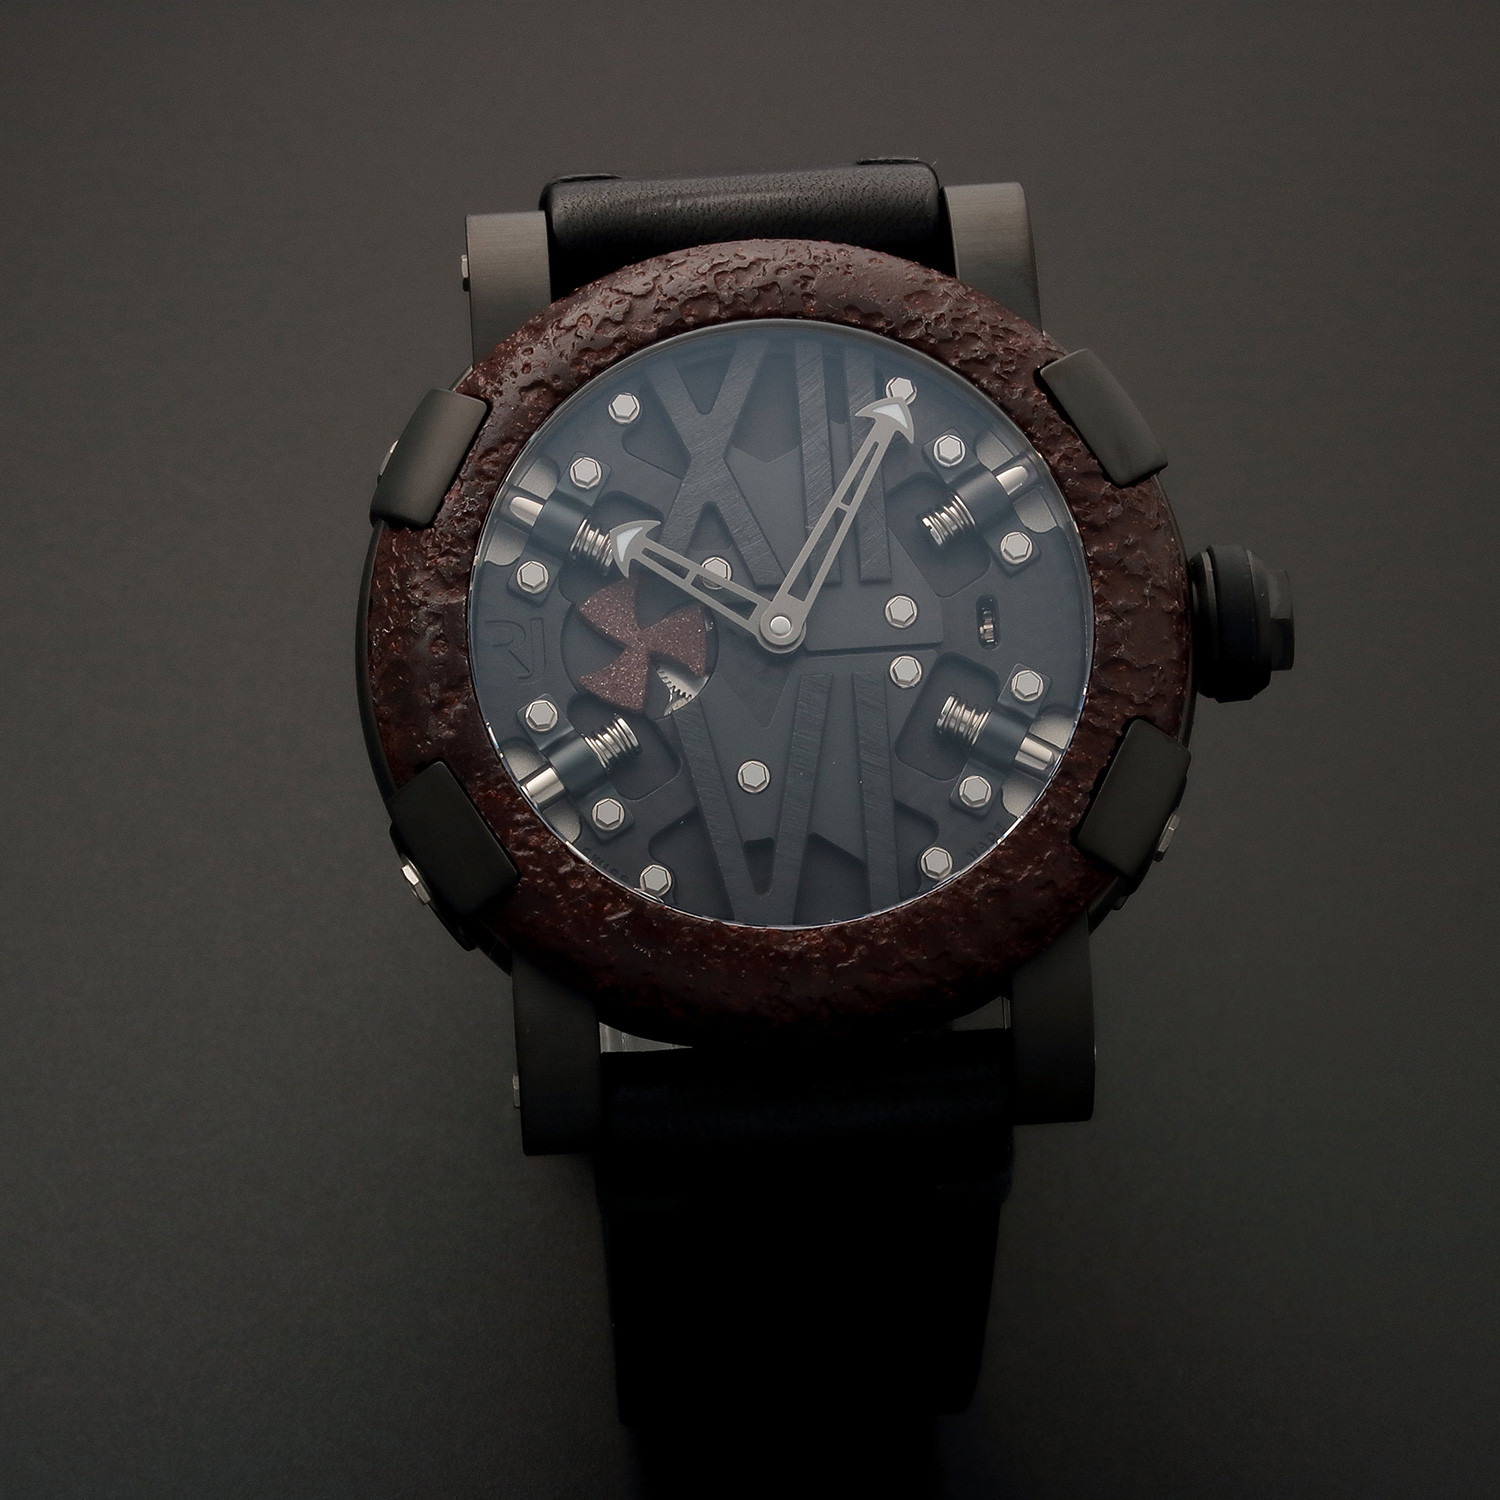 Romain jerome anniversary titanic dna automatic limited for Jerome girard